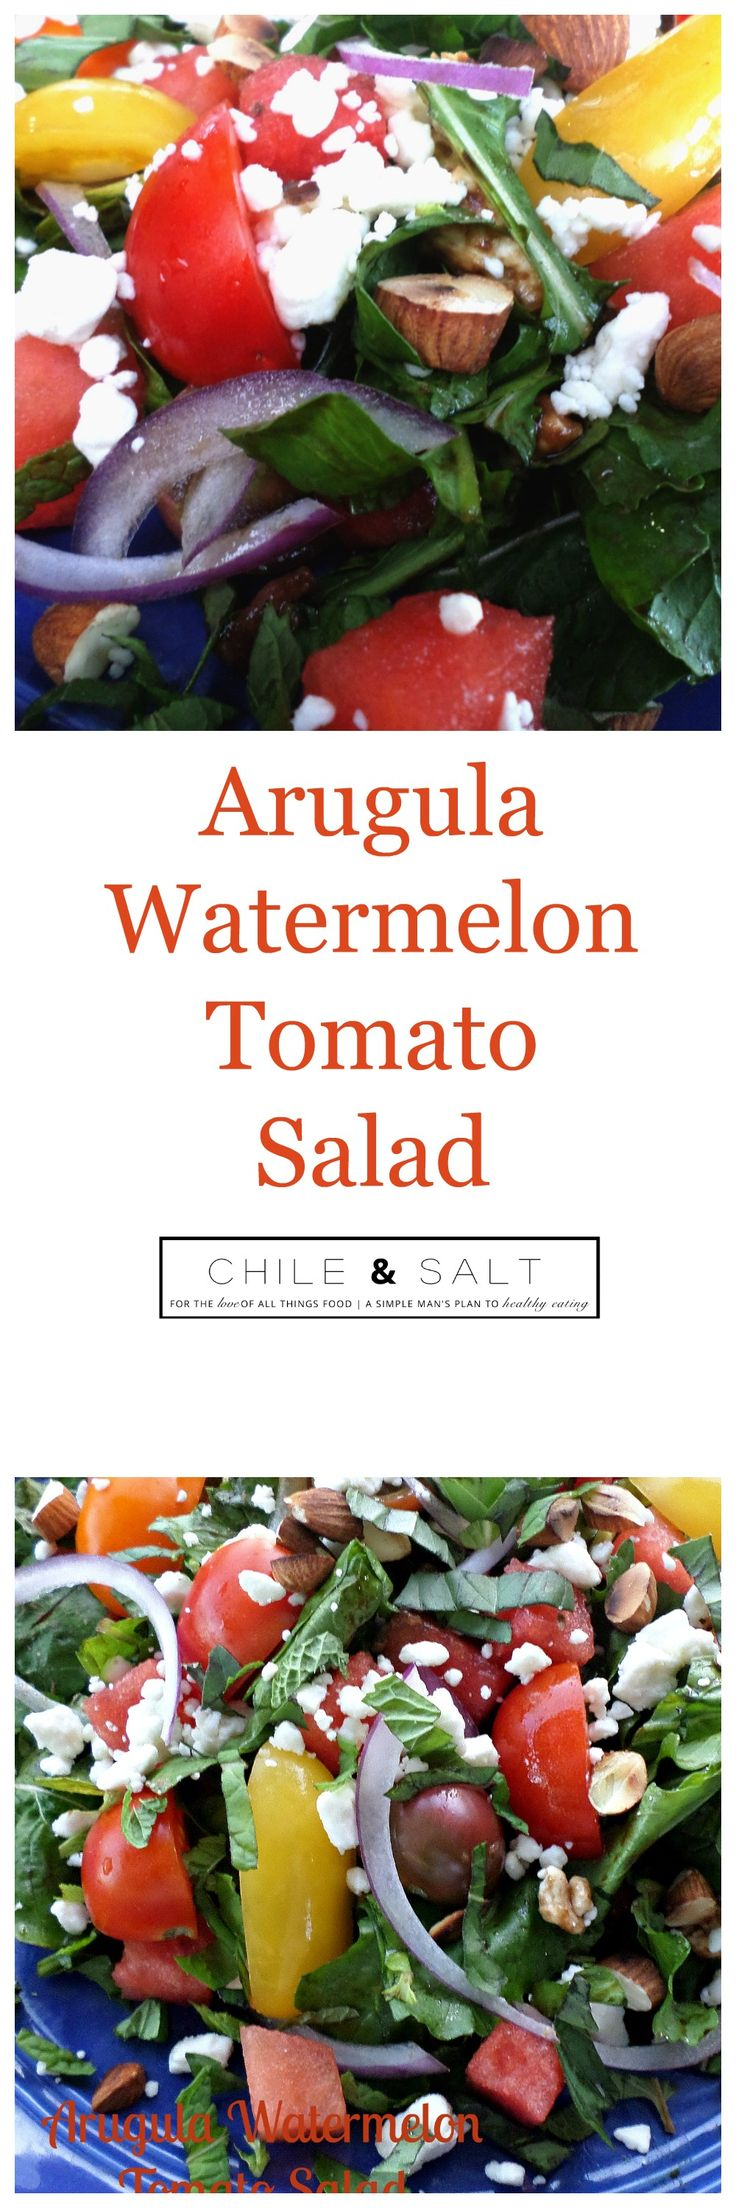 Arugula Watermelon & Tomato Salad,  accented with fresh mint & basil, crunch added with toasted almonds & all comes together with a balsamic glaze or reduction this is pretty perfect.